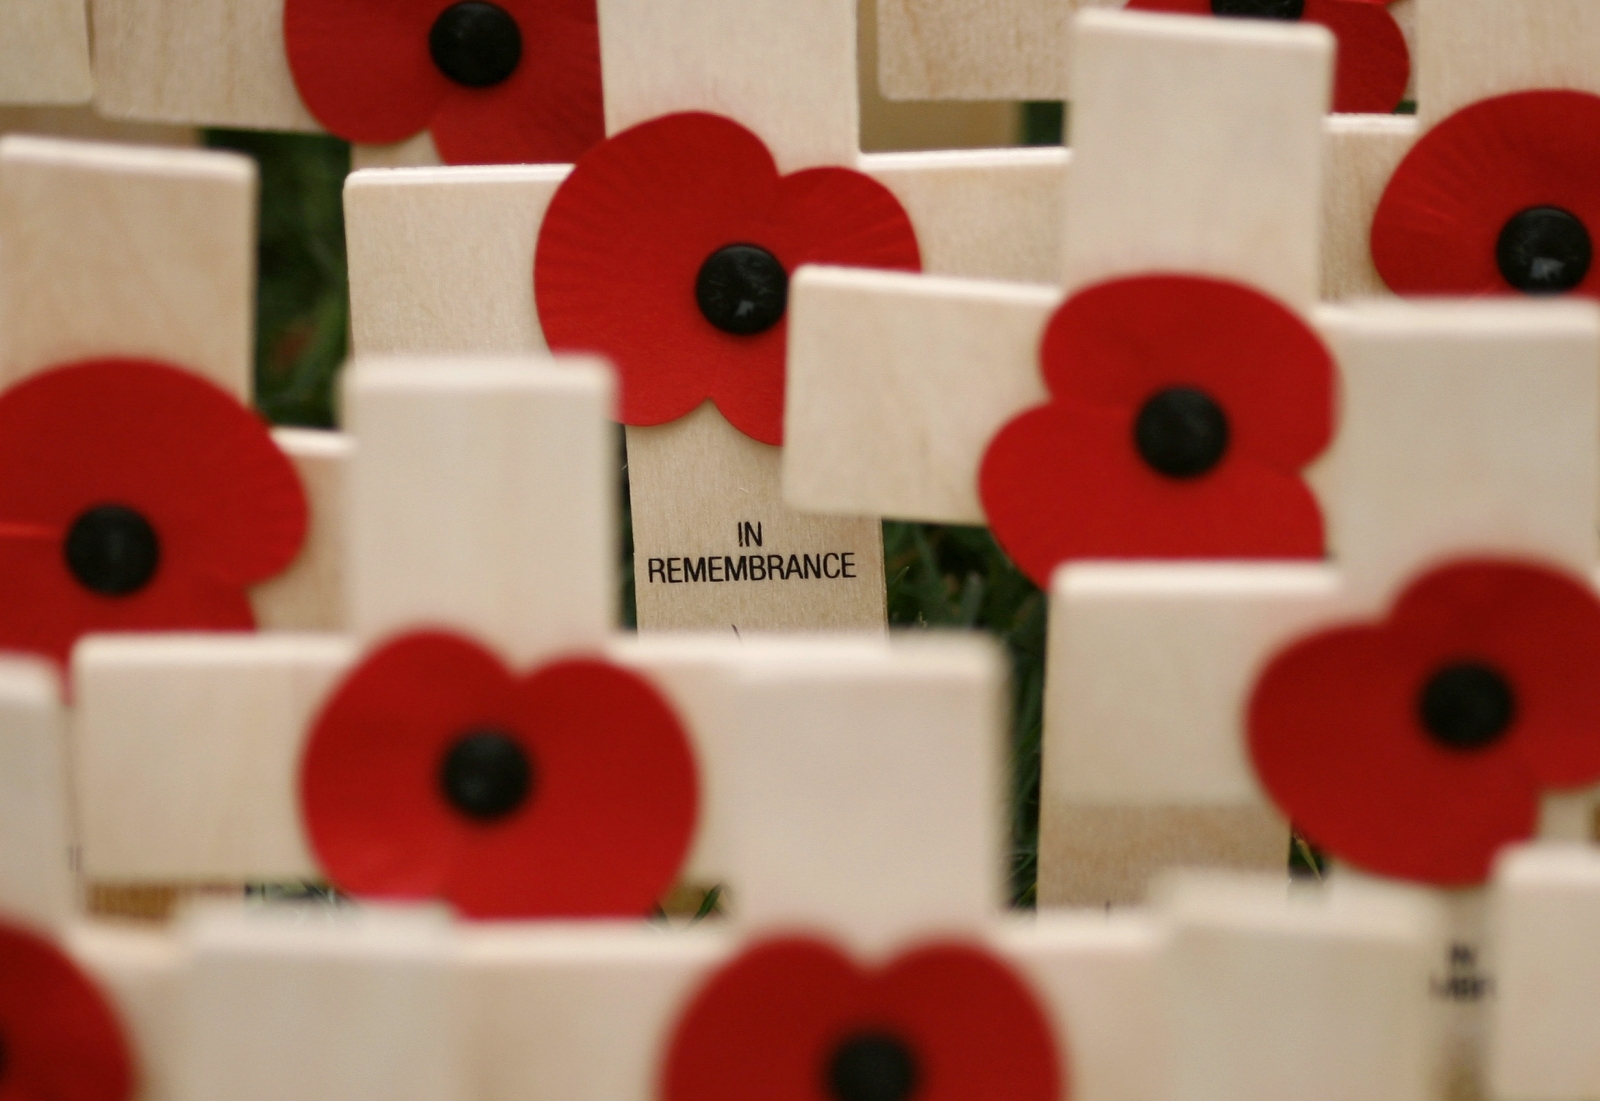 Omagh alert 'attempt to disrupt Remembrance Day'